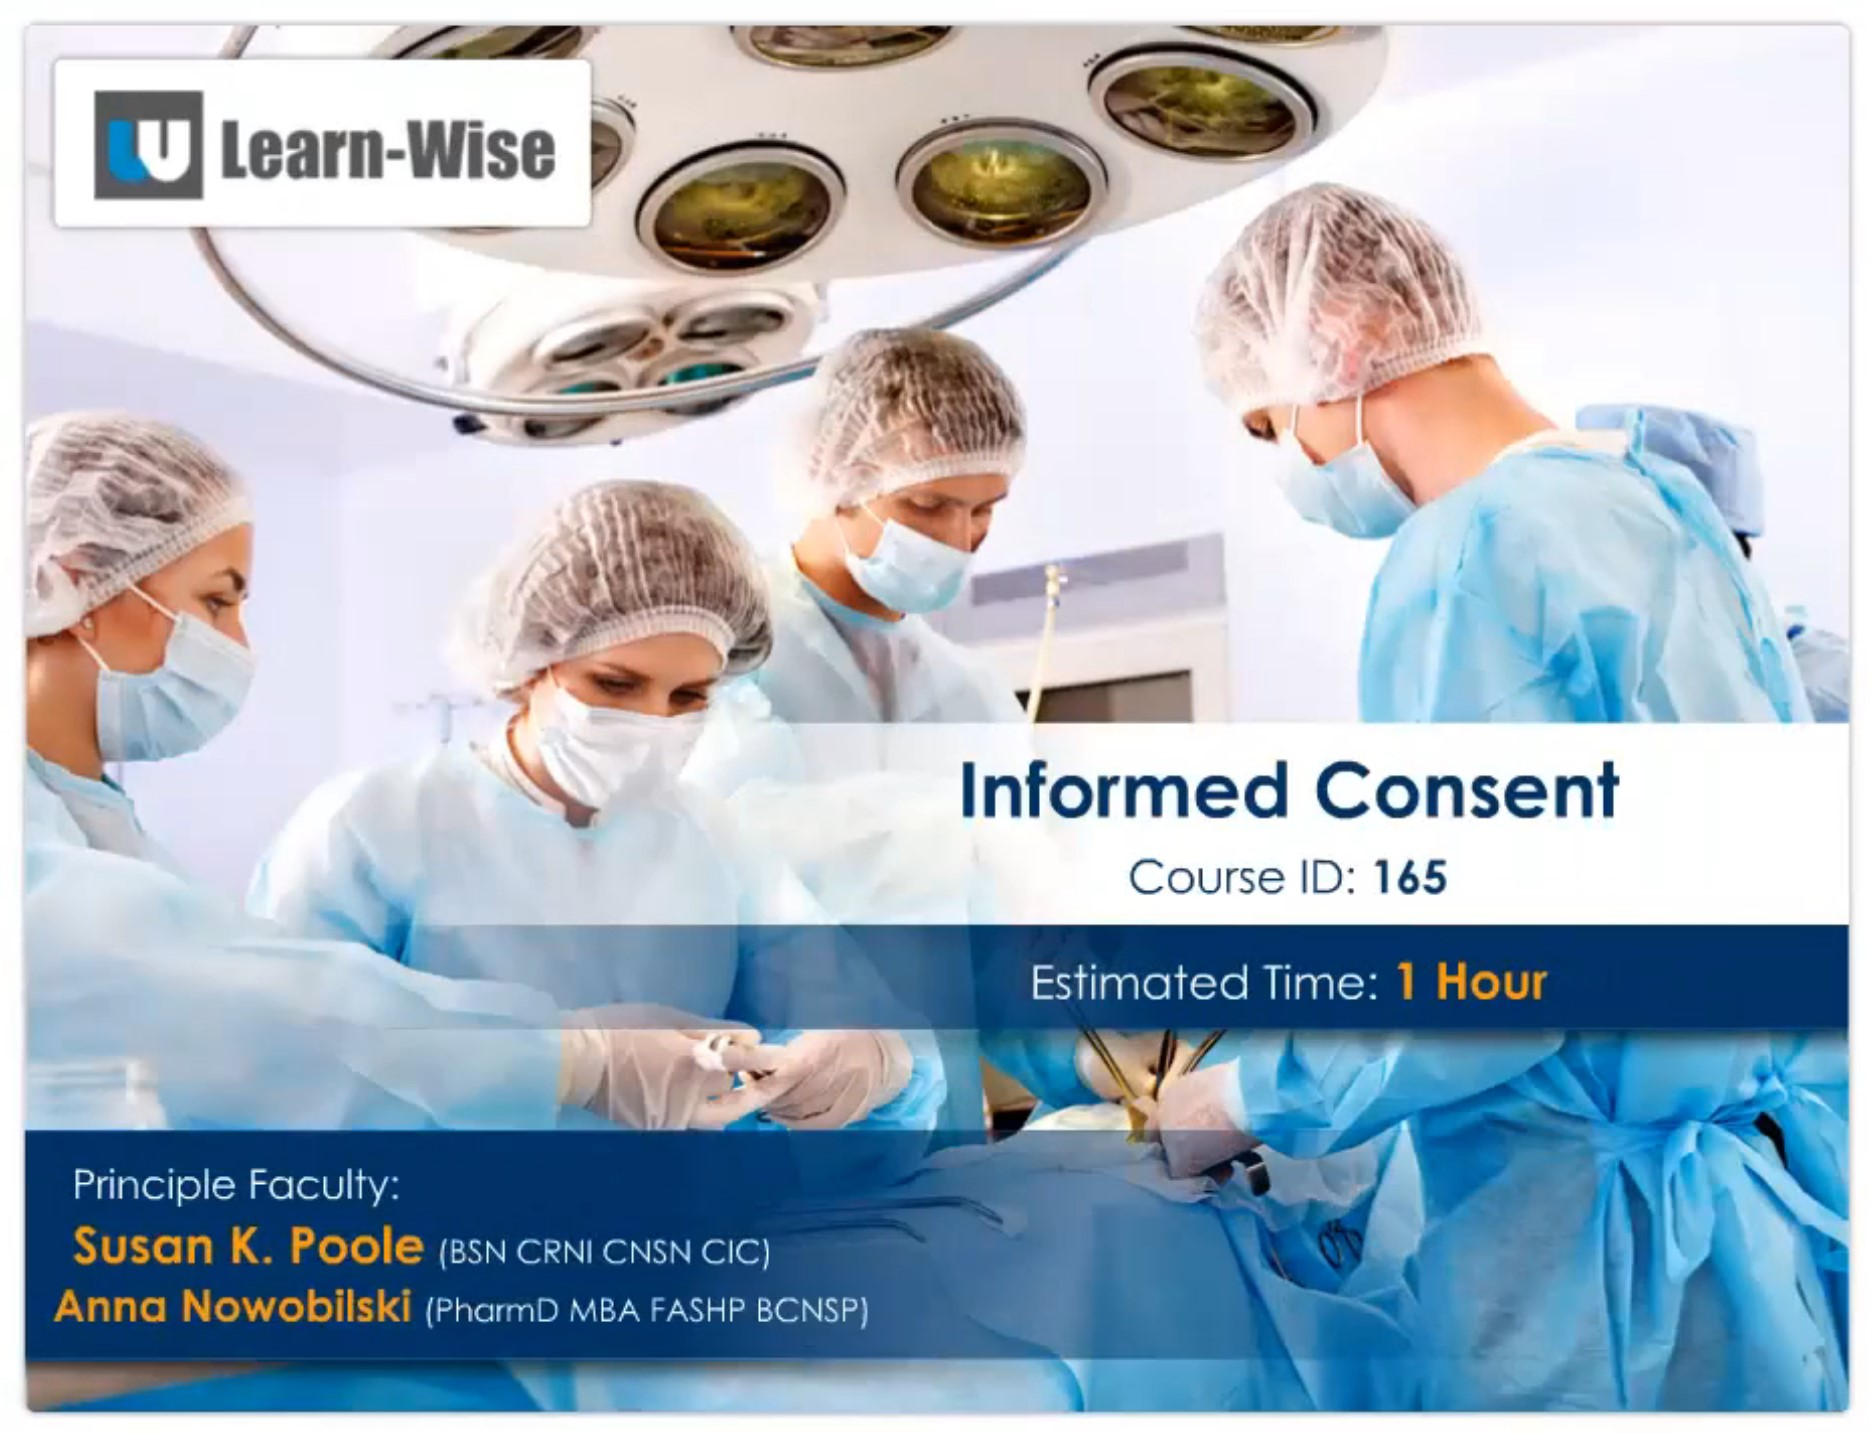 Informed Consent image